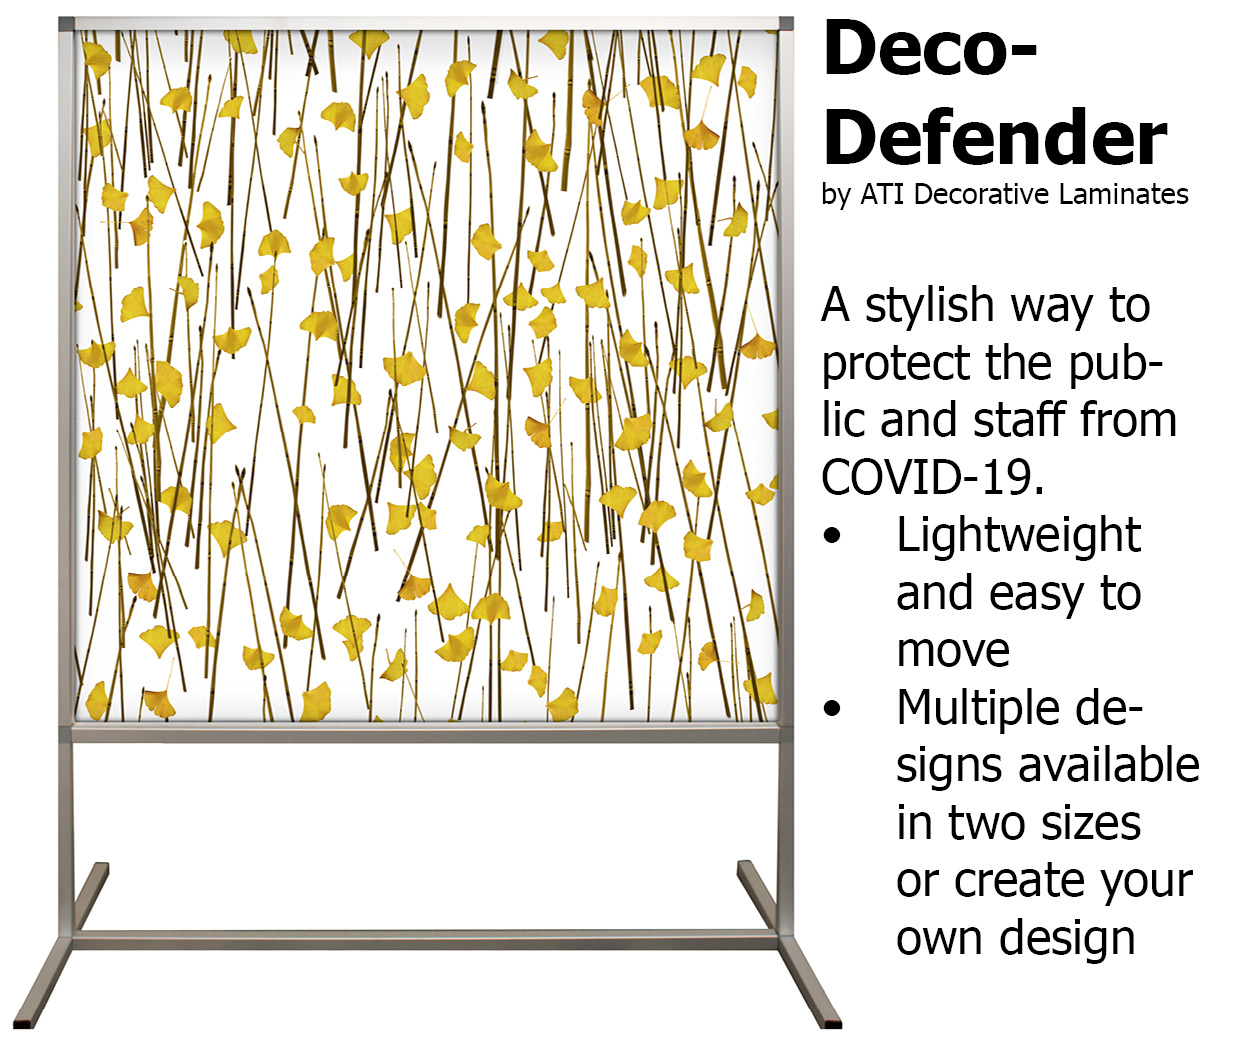 Deco-Defender by ATI Decorative Laminates. A stylish way to protect the public and staff from COVID-19. Lightweight and easy to move, Multiple designs available in two sizes or create your own design.